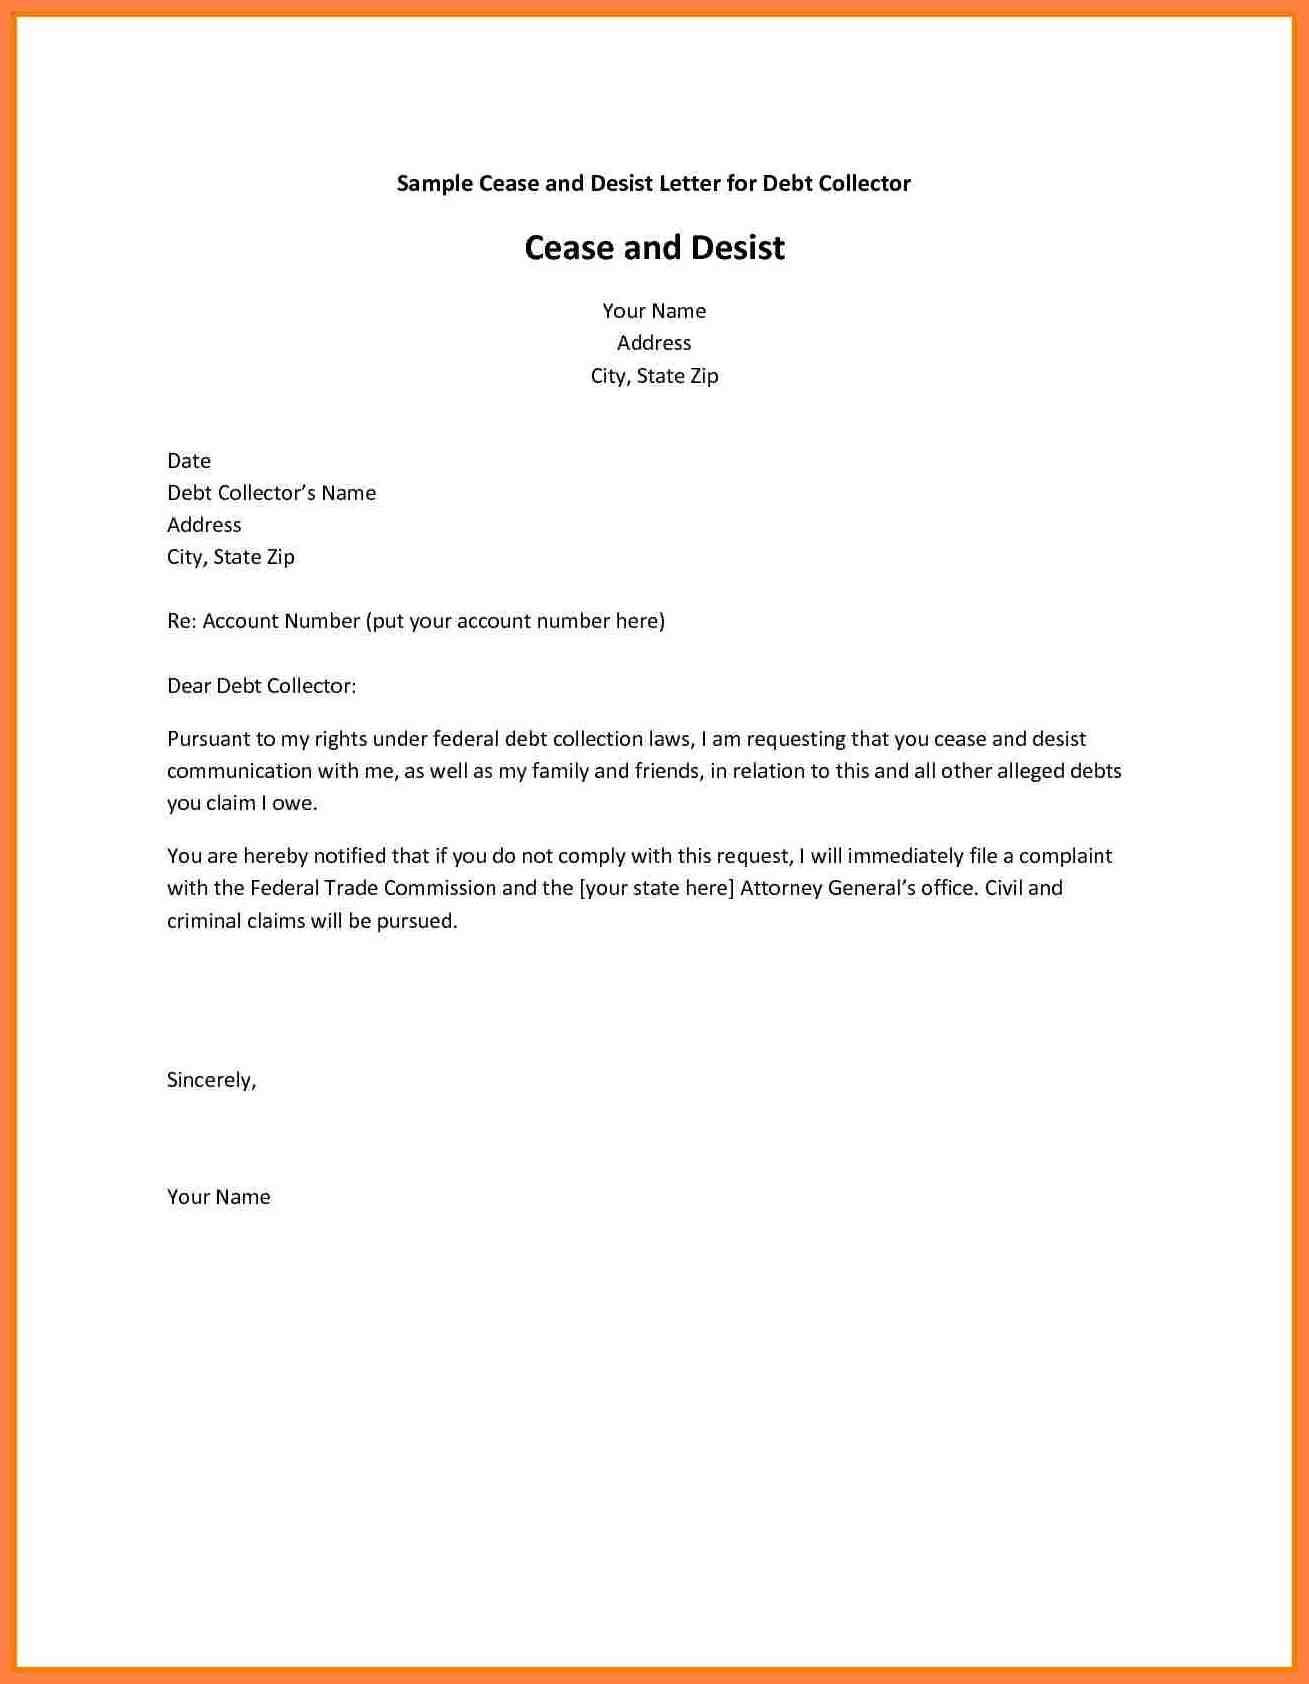 Cease and Desist Contact Letter Template - Cease and Desist Letter Sample Lovely Best Debt Collection Cease and